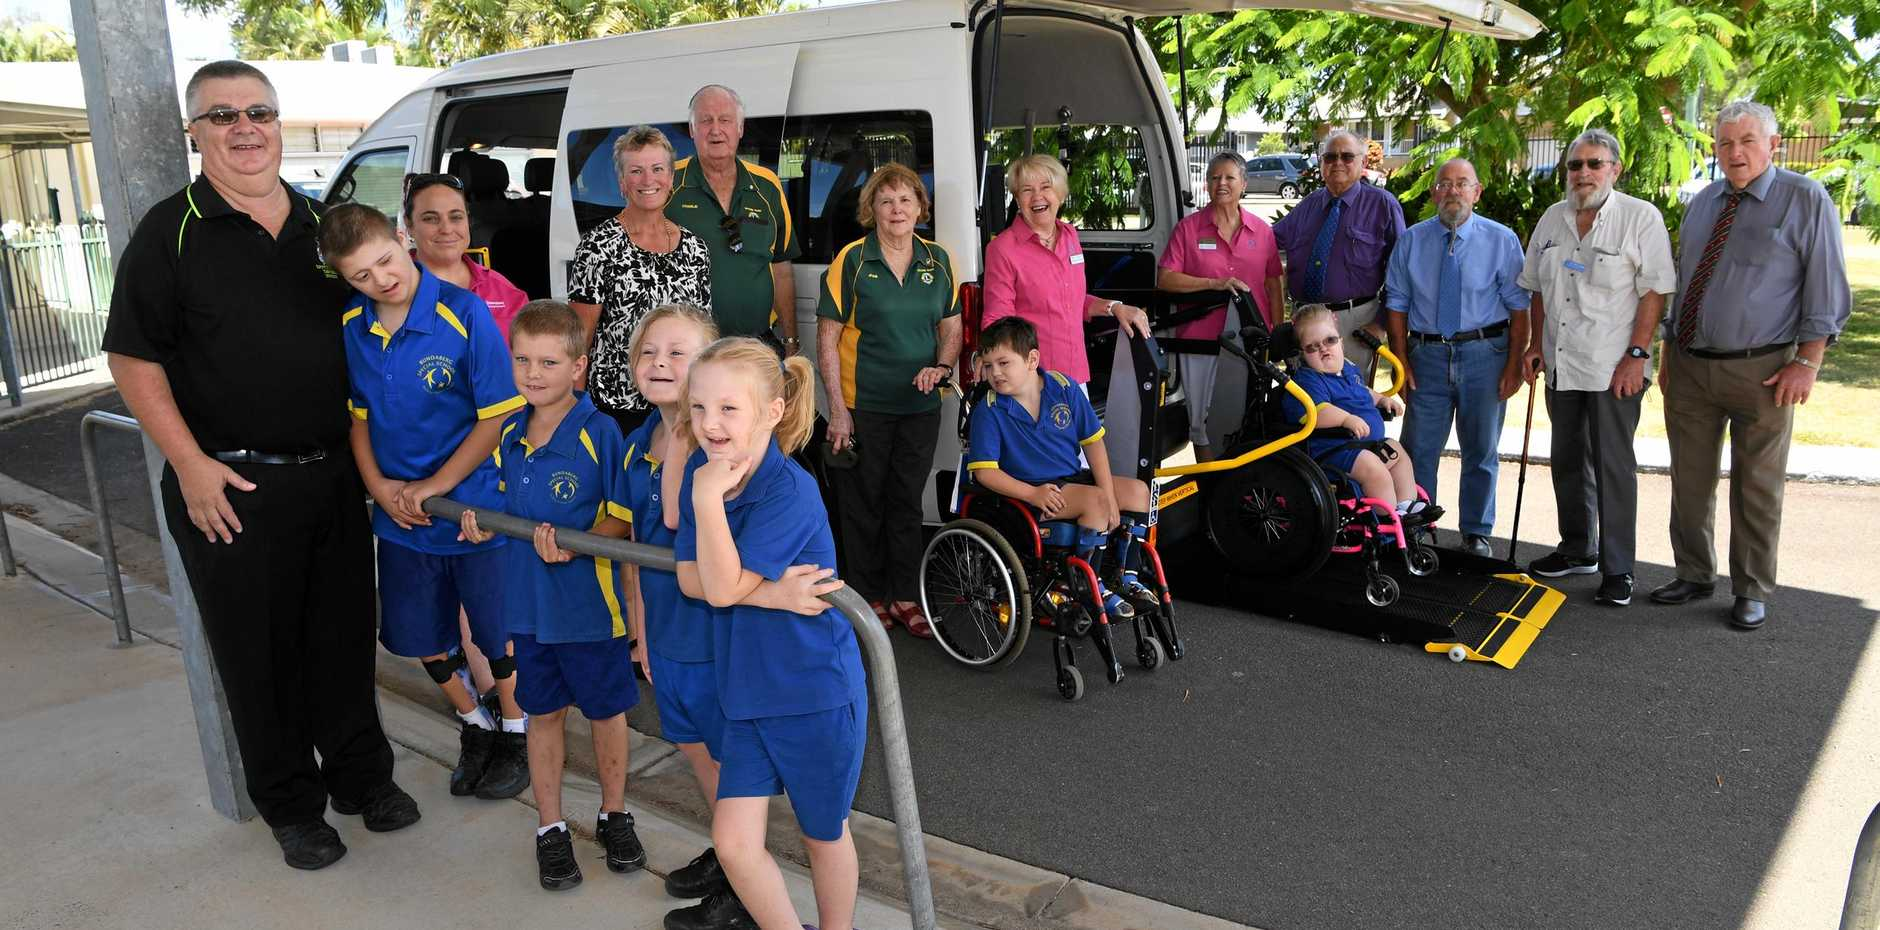 SPECIAL SCHOOL BUS: Liam, Eddie, Ellie-May, Natayleah, Dallas and Hannah have a new school bus thanks to generous donations from various community groups. Representatives from the Masonic Hand Heart Pocket Charity, Quota, Lions Moore Park, The Spotted Dog Tavern and St Johns Grace Fund were there to celebrate the new vehicle.